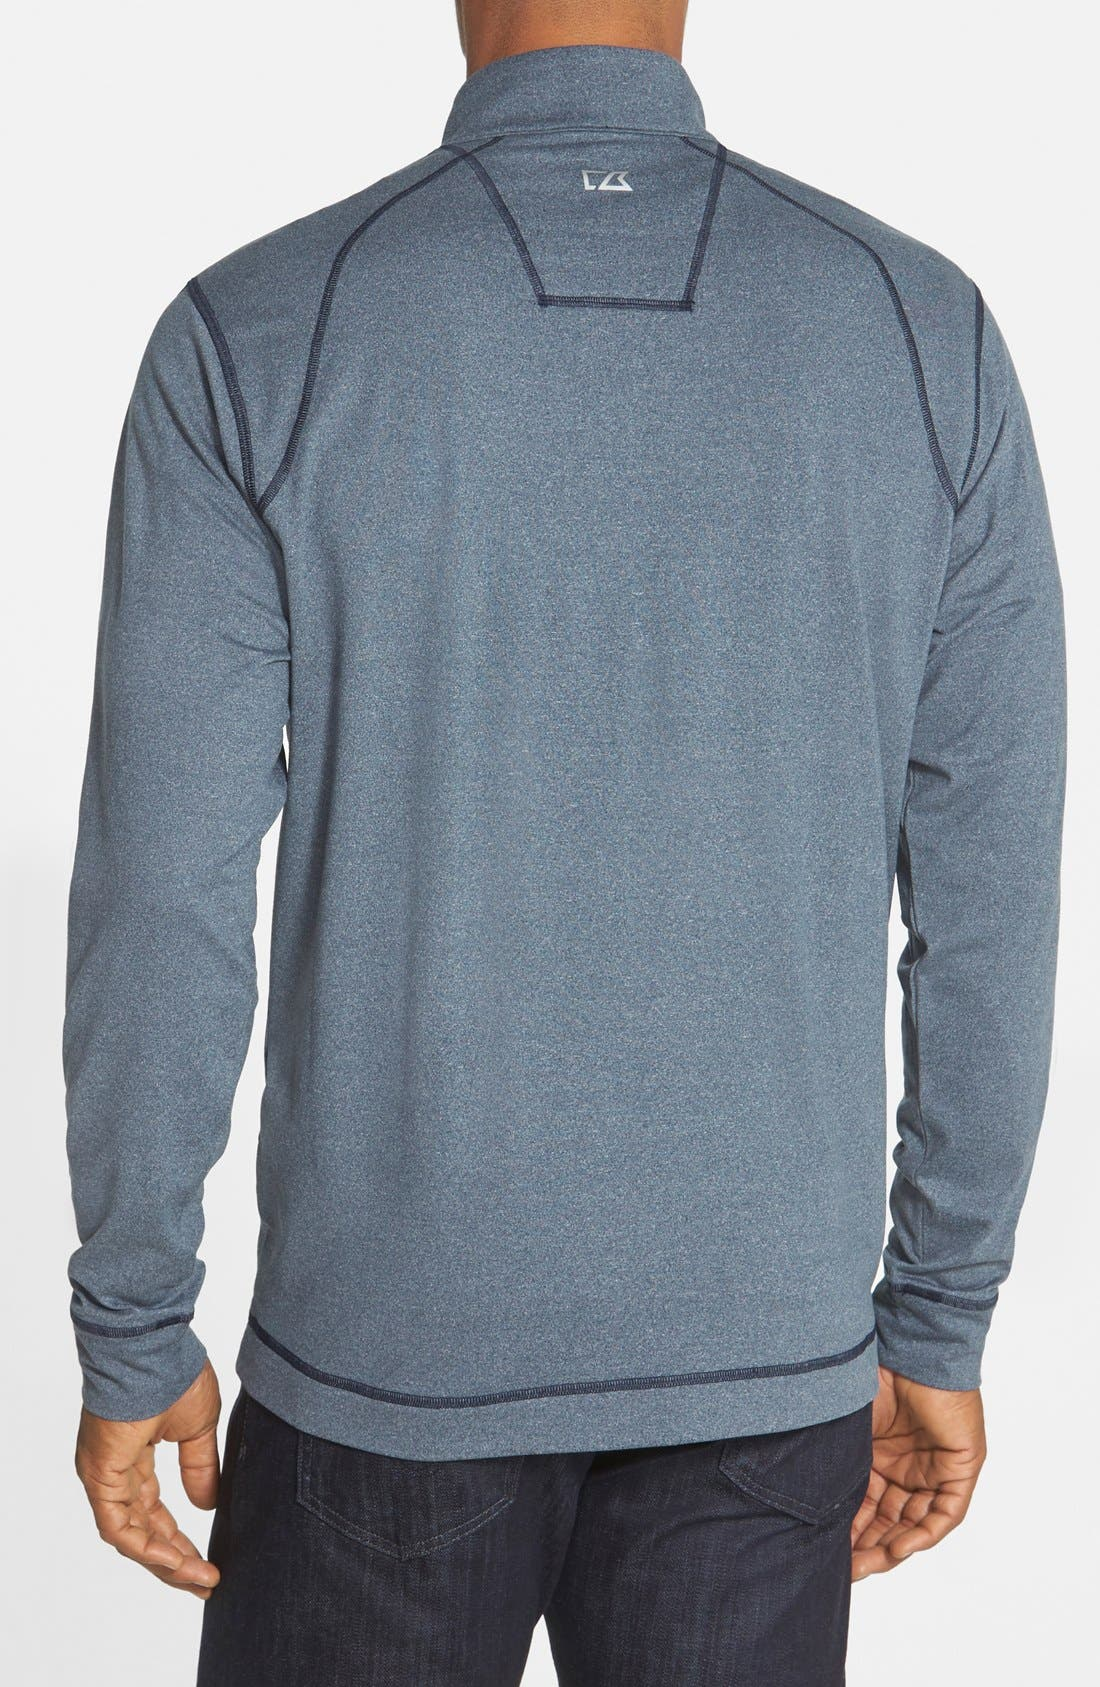 CUTTER & BUCK, 'Topspin' DryTec Half Zip Pullover, Alternate thumbnail 3, color, NAVY HEATHER